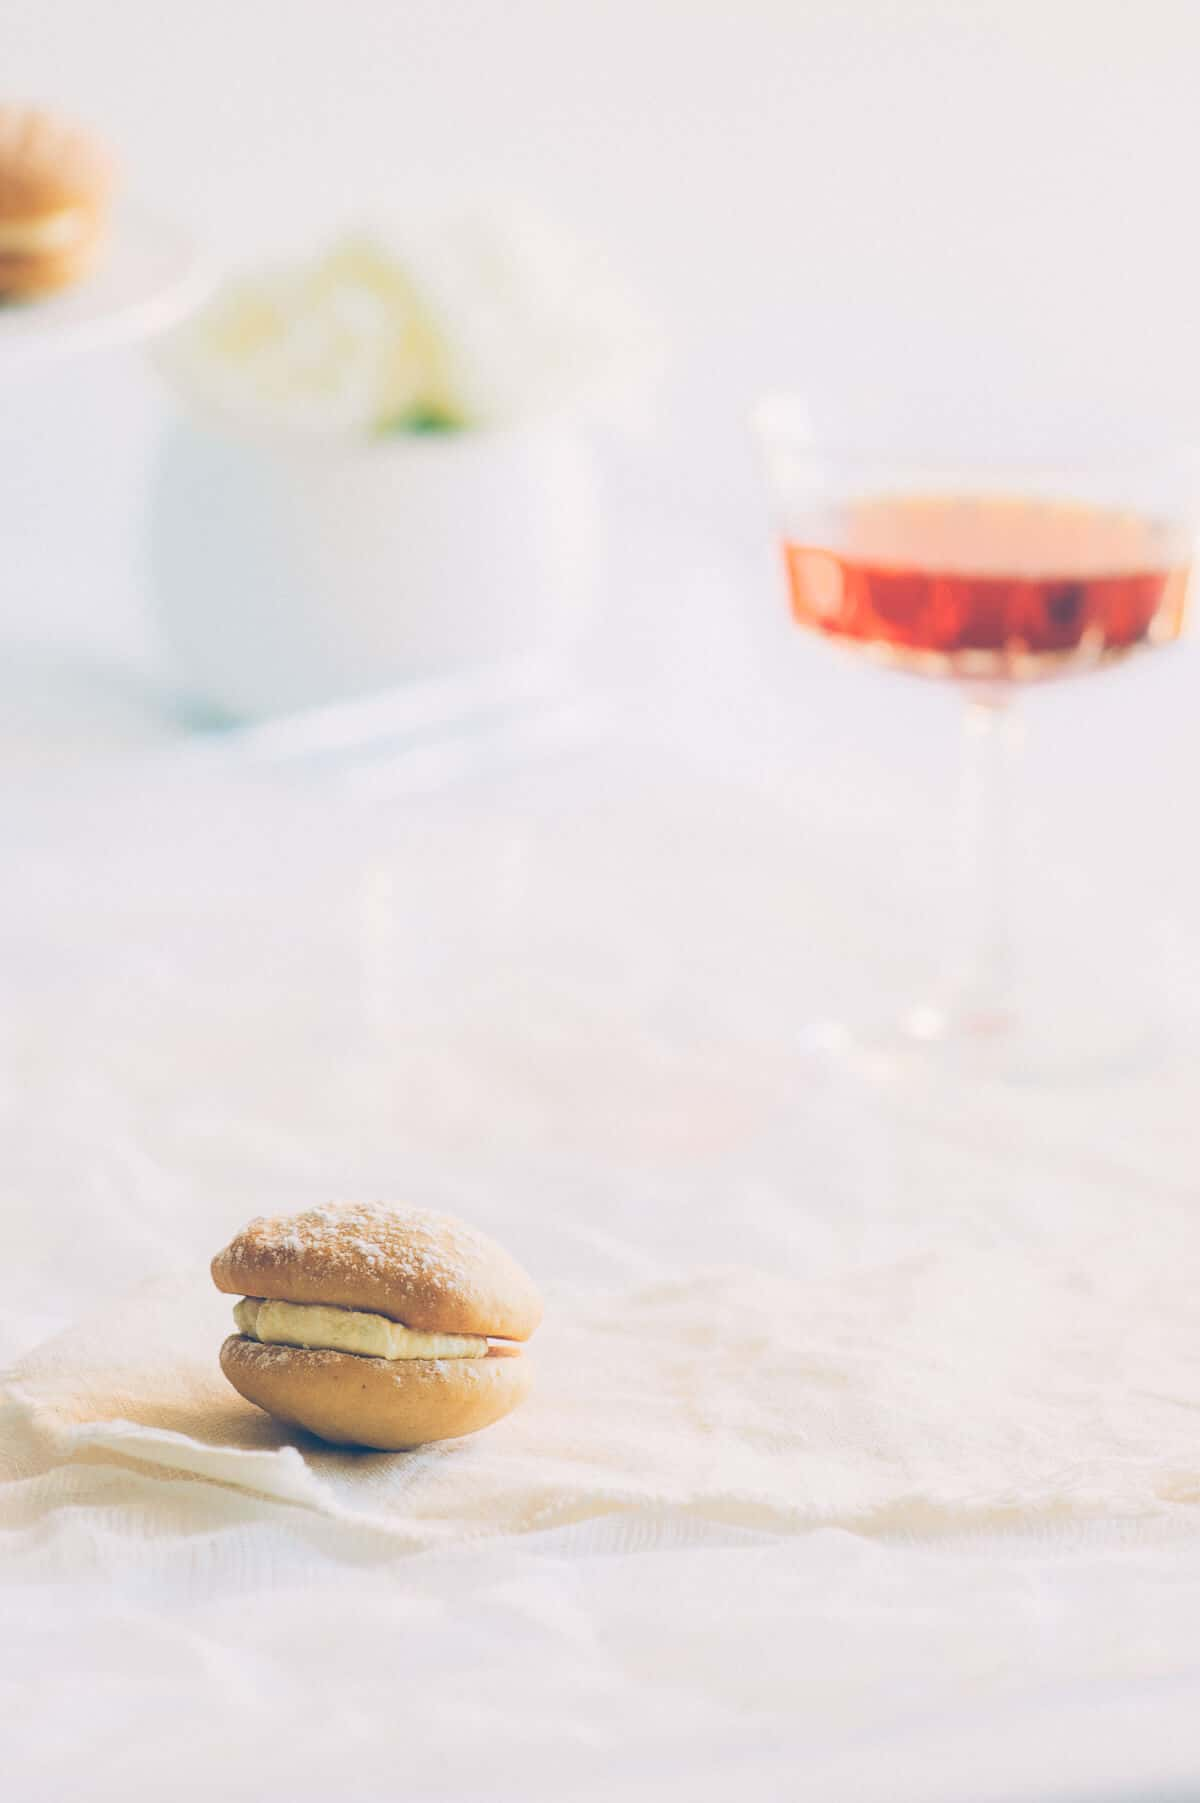 a cookie with a glass of wine presented in the background